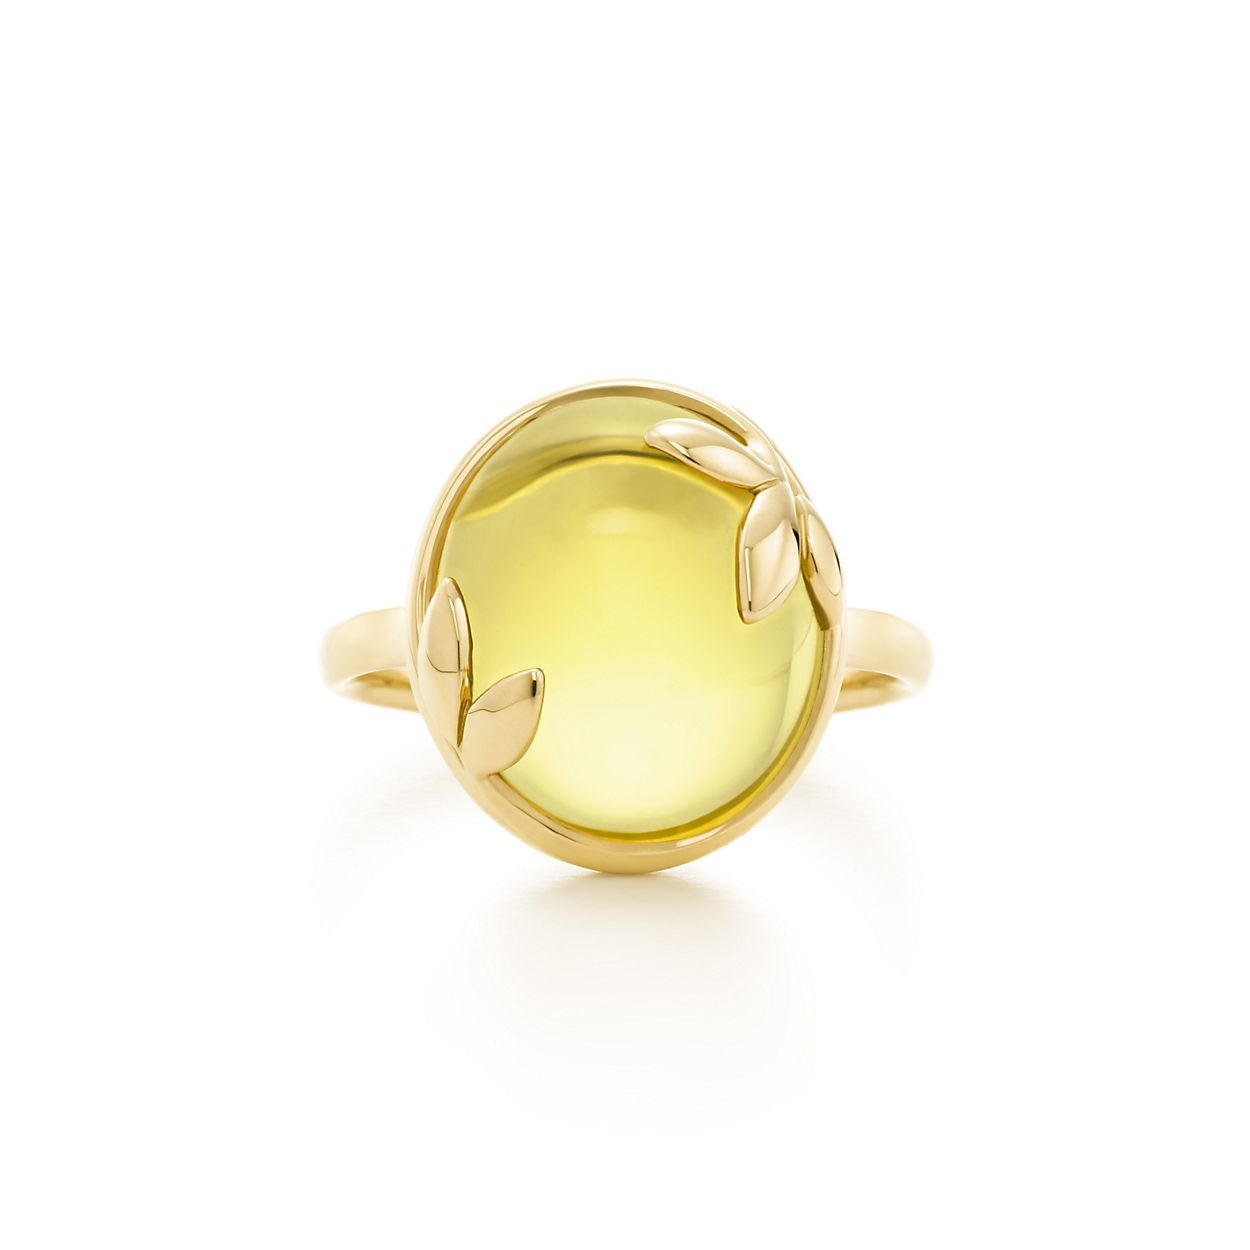 Paloma Picasso Olive Leaf ring in 18k gold with a citrine - Size 6 Tiffany & Co. 6H4Rmh